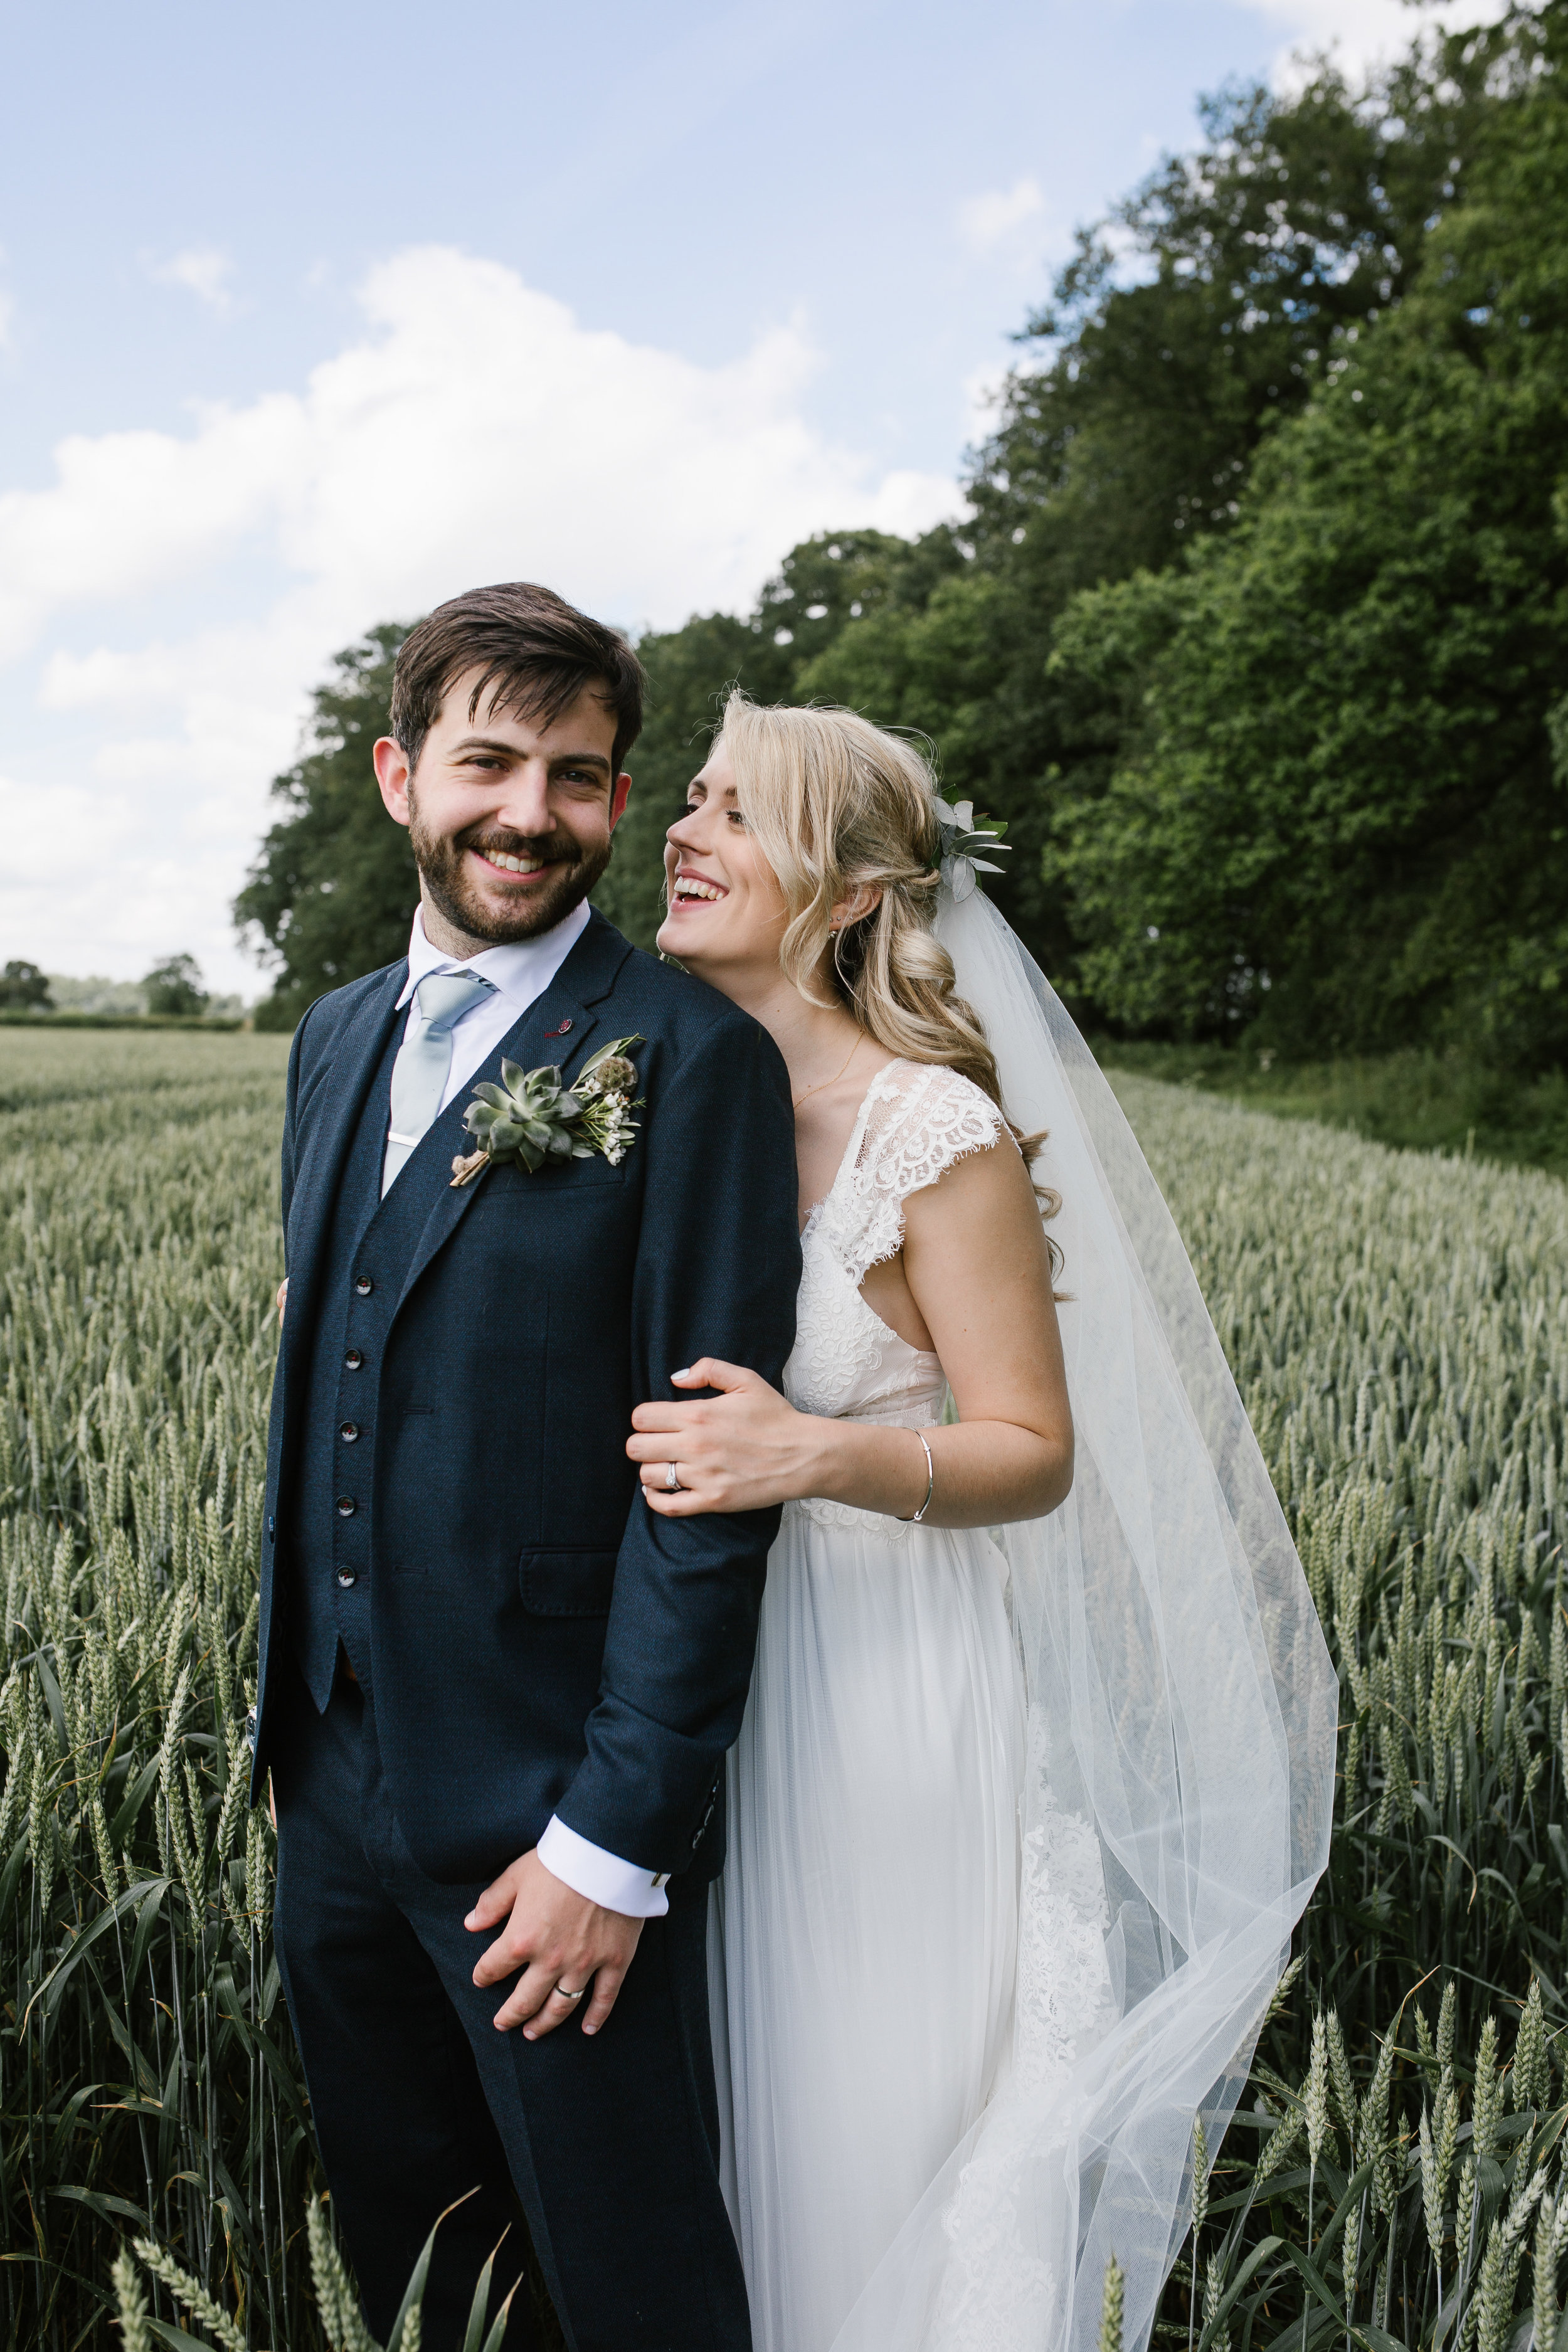 wedding photography in the cotswolds, bride and groom laugh happily together at their festival themed wedding